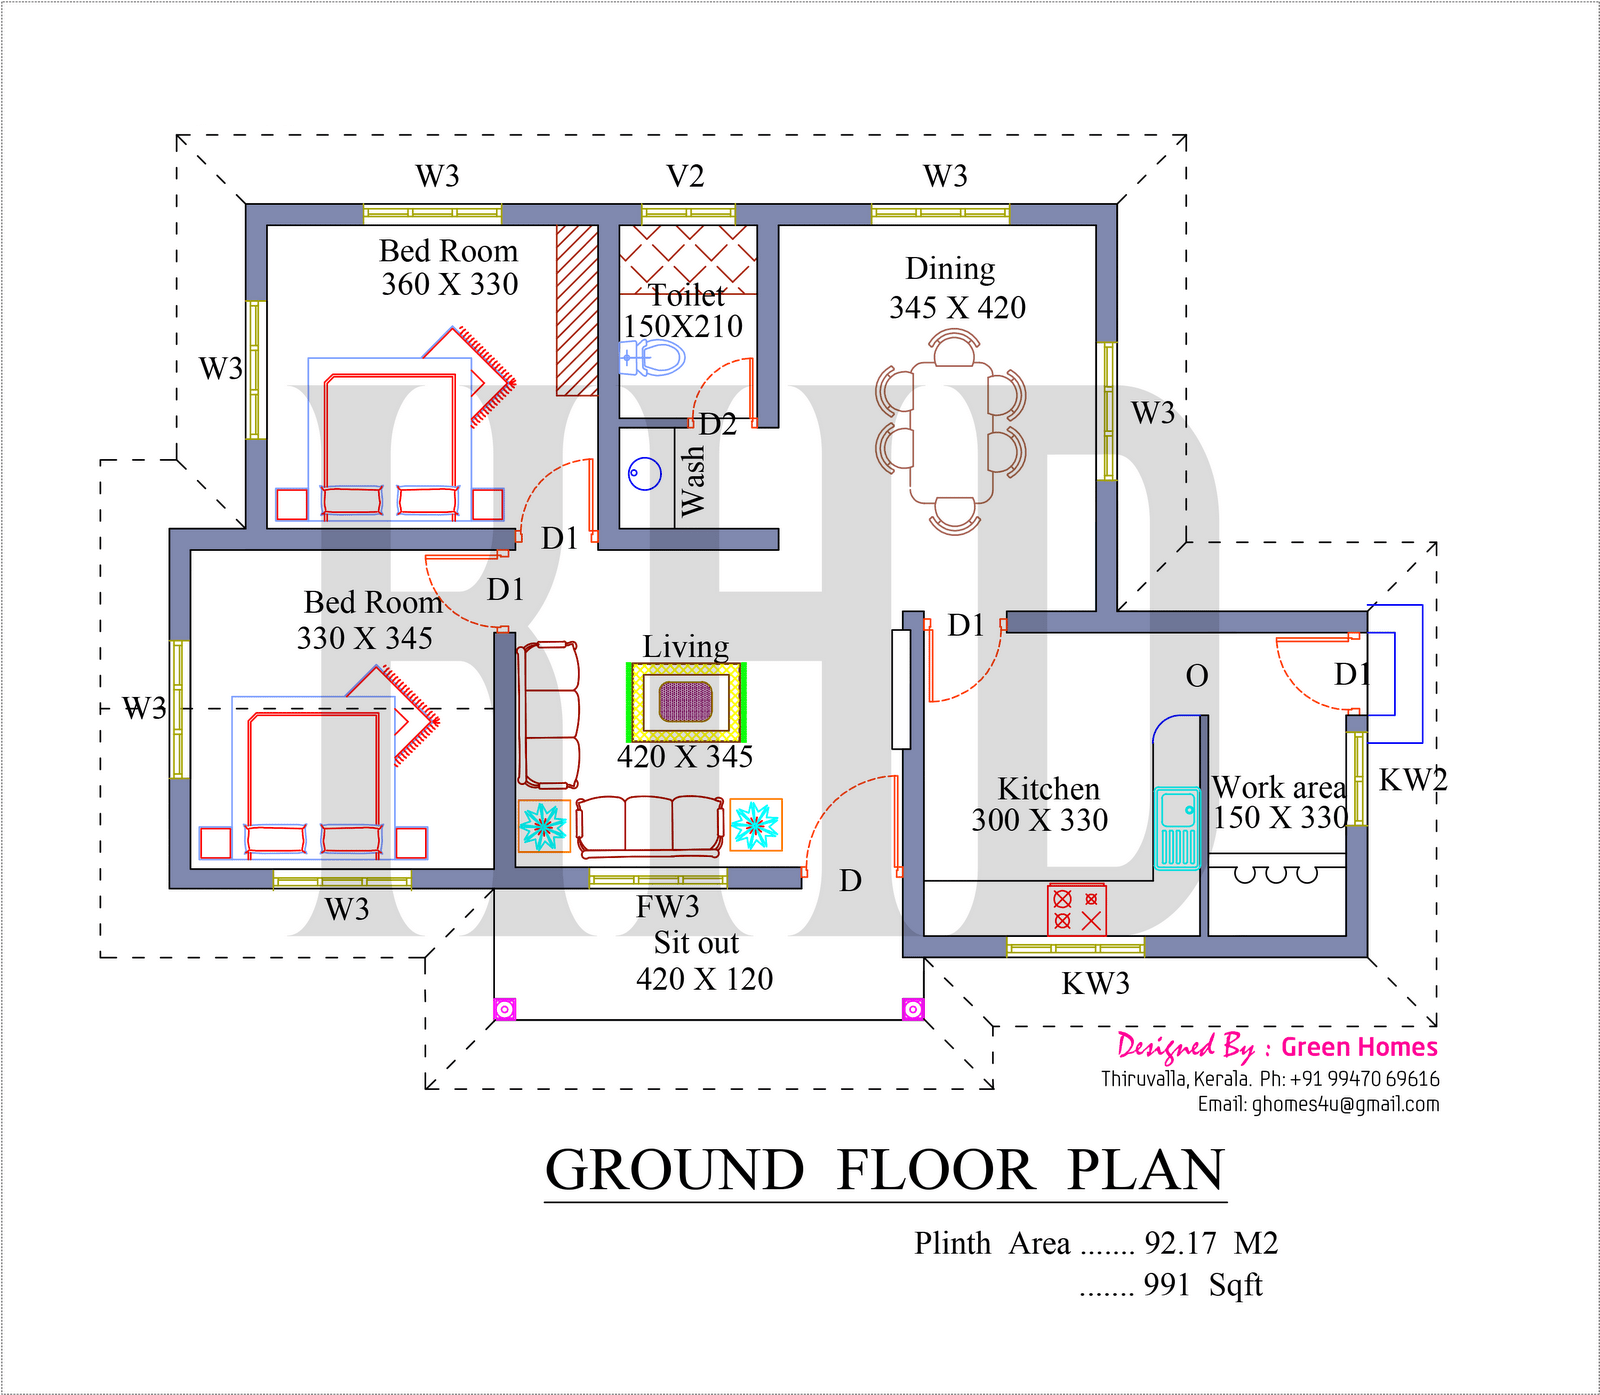 kerala-house-plan-for-991-sq.ft-house.png